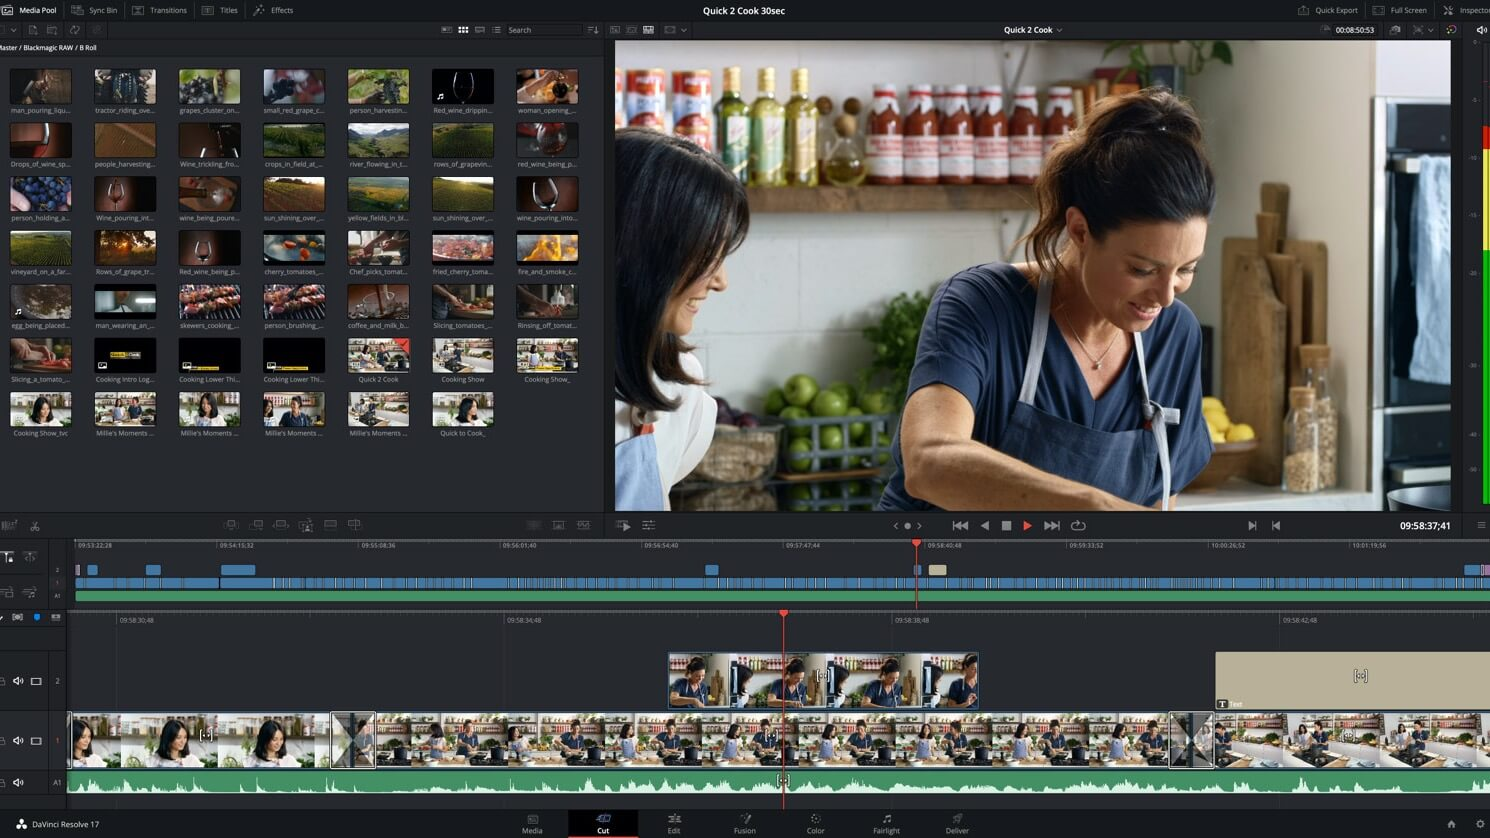 Blackmagic releases Da Vinci Resolve 17